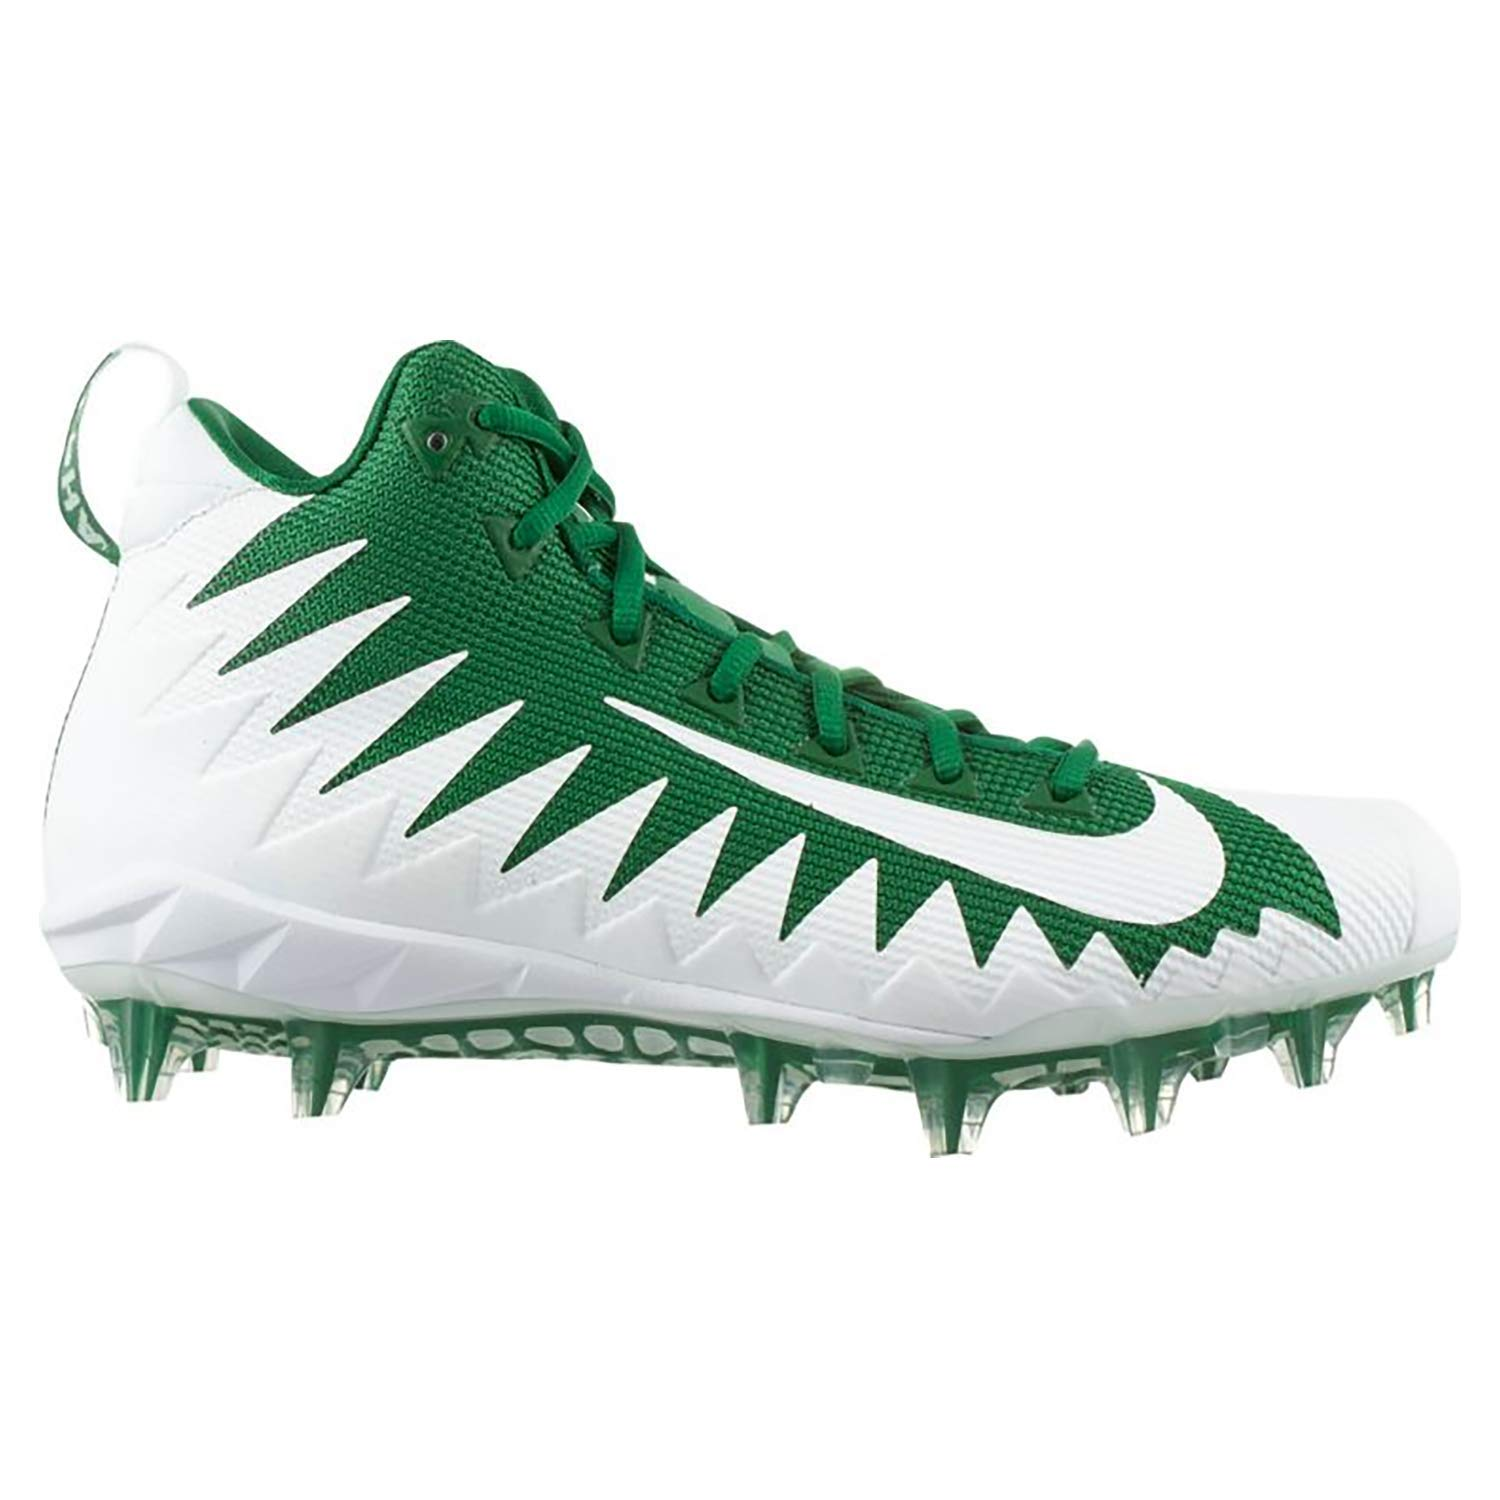 6d6eeb7d7b0c2 Best Rated in Men s Football Shoes   Helpful Customer Reviews ...